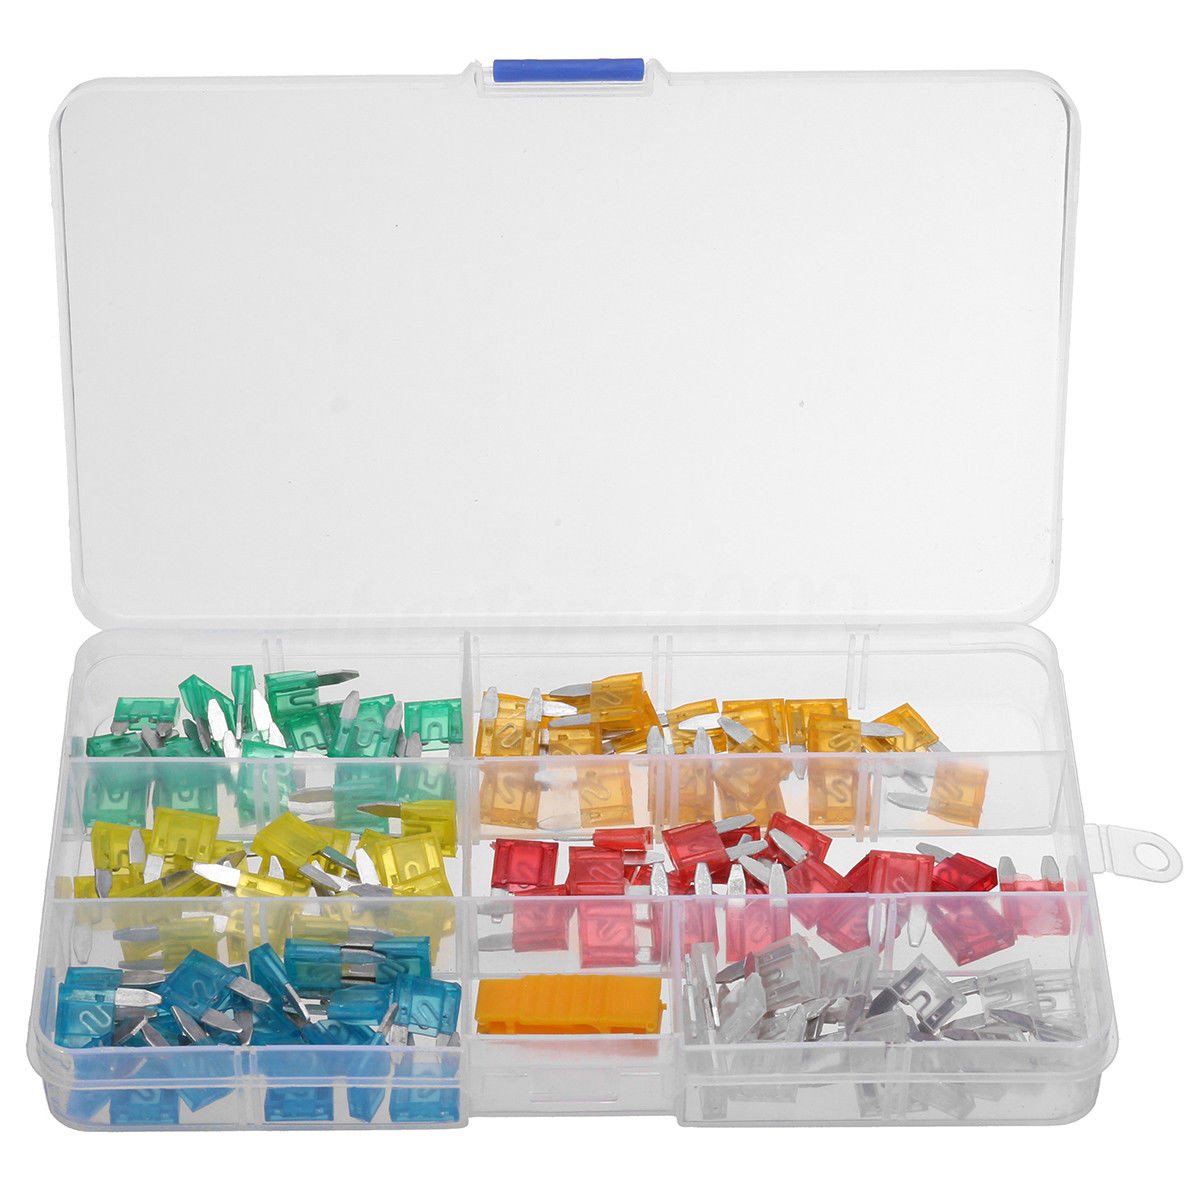 120 PC Mini Assorted Car Fuse Color Coded Fuse Replacement Kit Auto SUV /& Truck